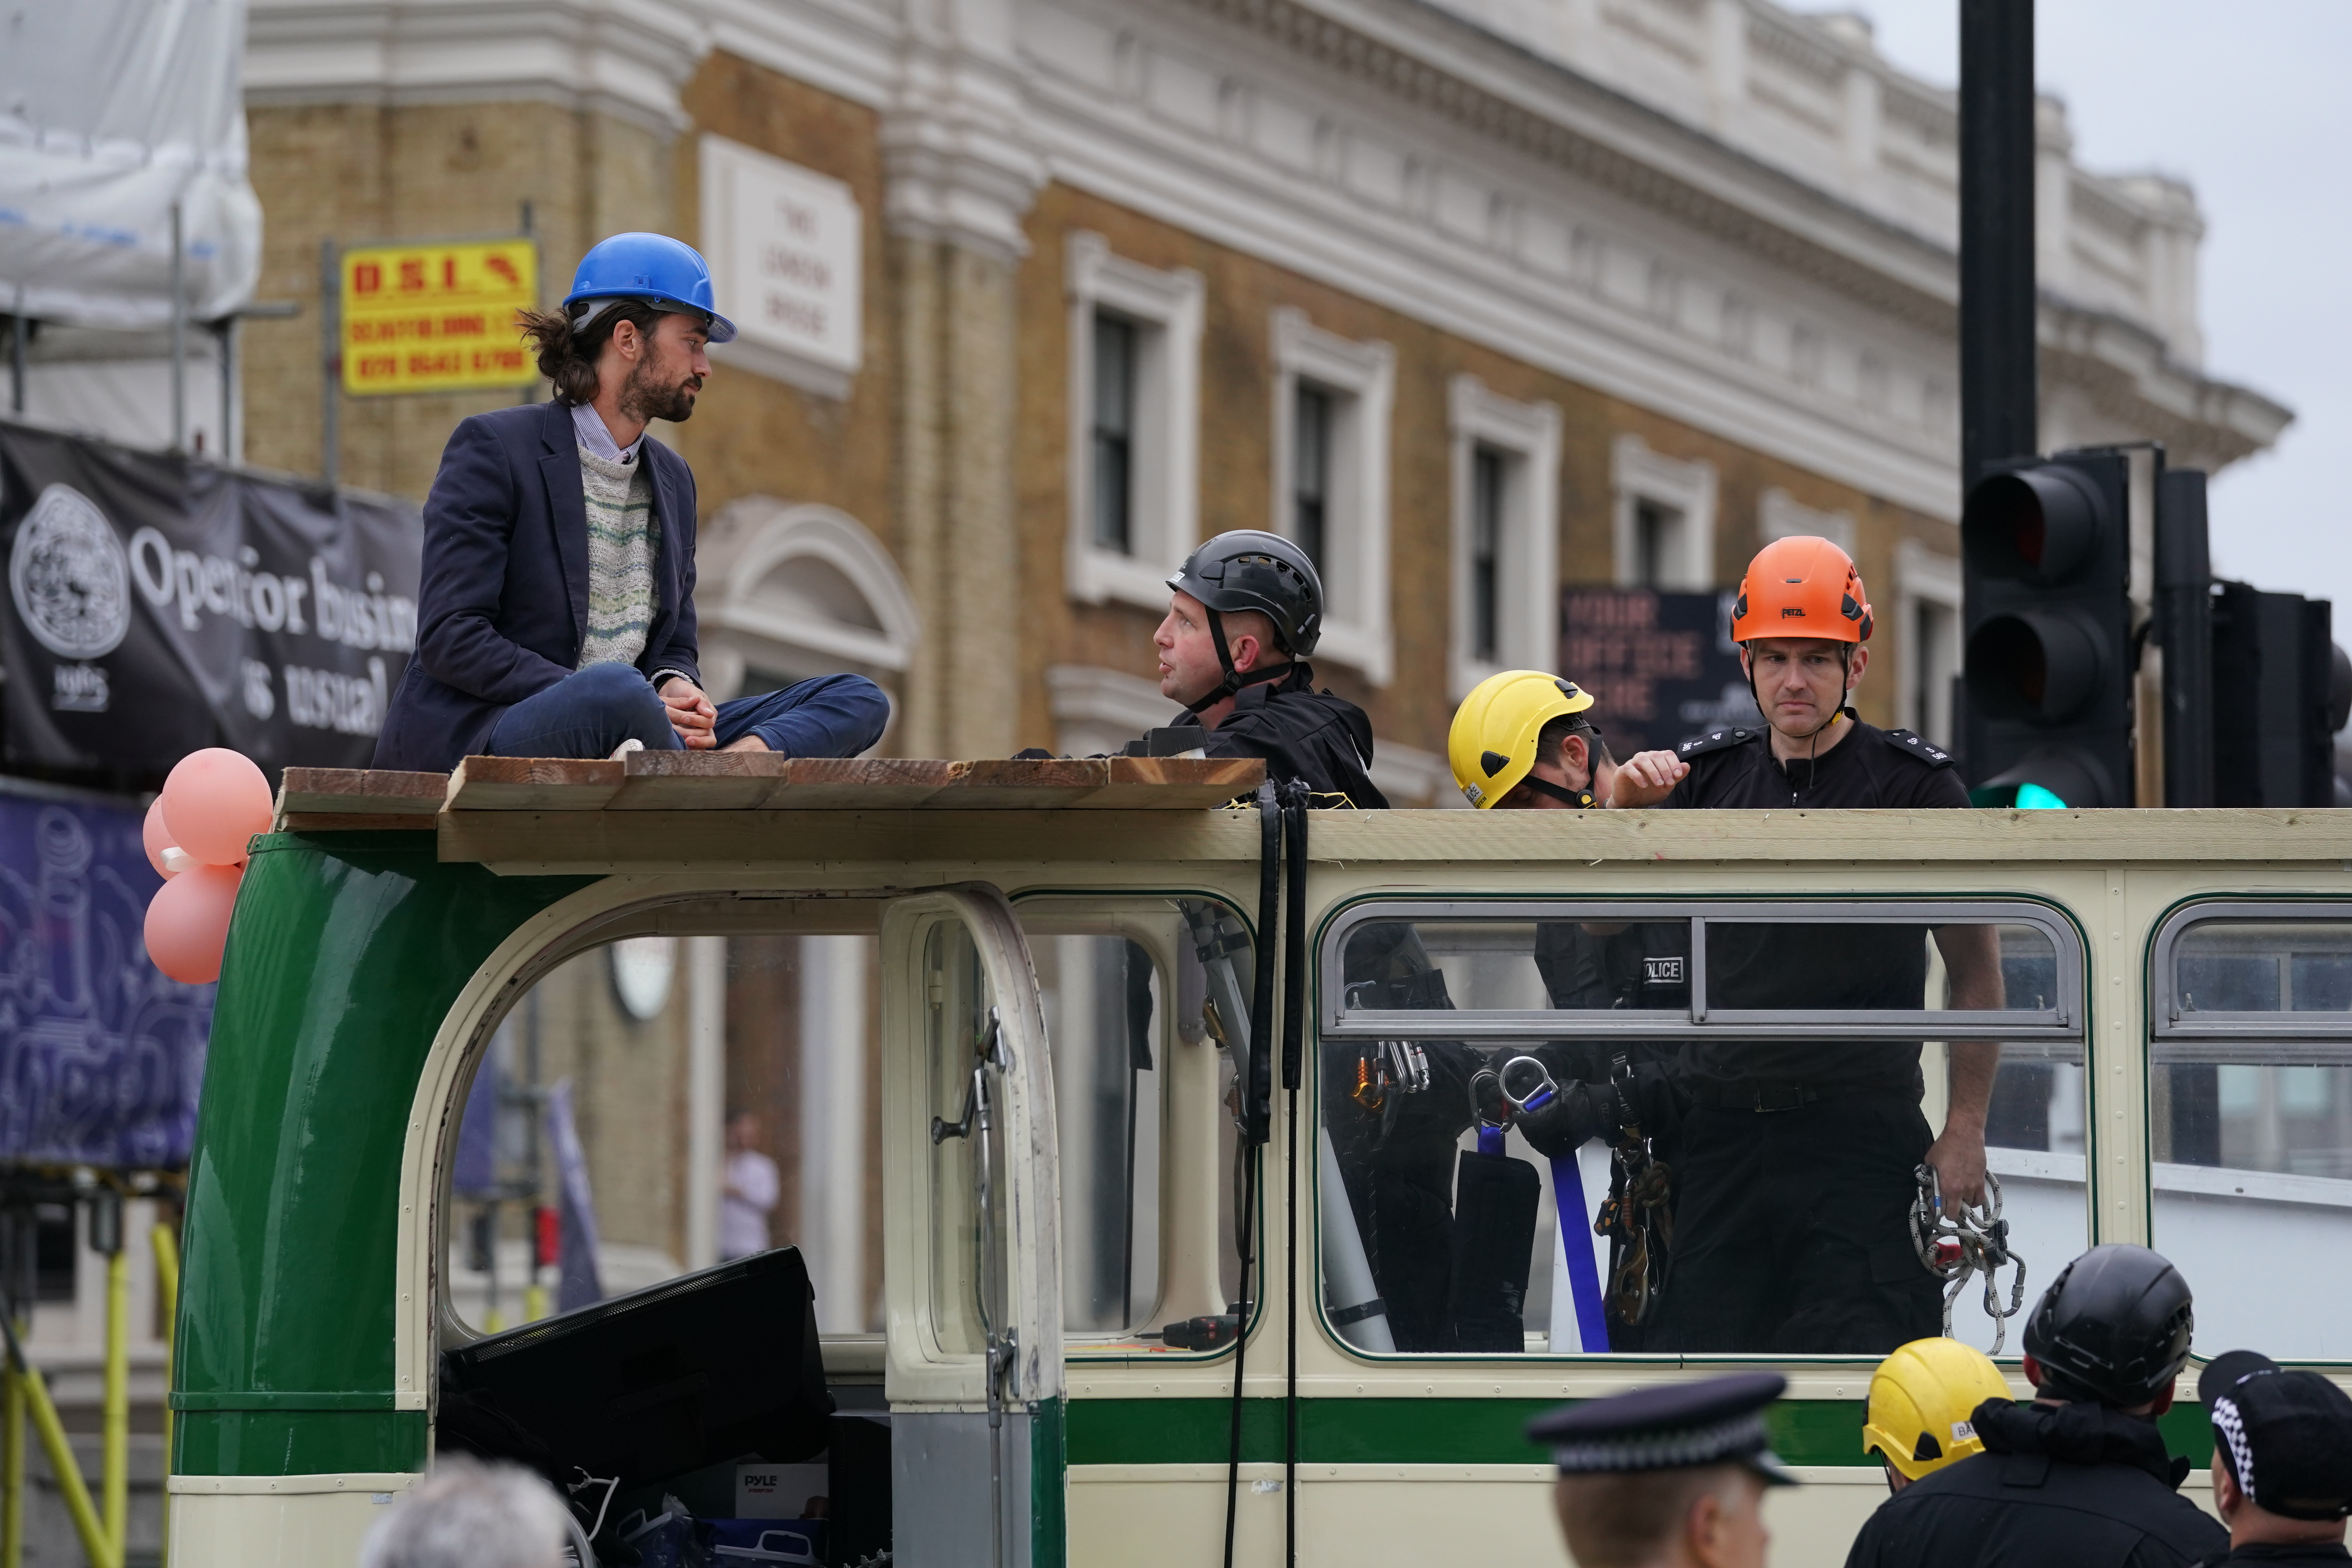 <p>Police remove a demonstrator from a bus parked on London Bridge in central London during a protest by members of Extinction Rebellion. Picture date: Tuesday August 31, 2021. (Photo by Kirsty O'Connor/PA Images via Getty Images)</p>